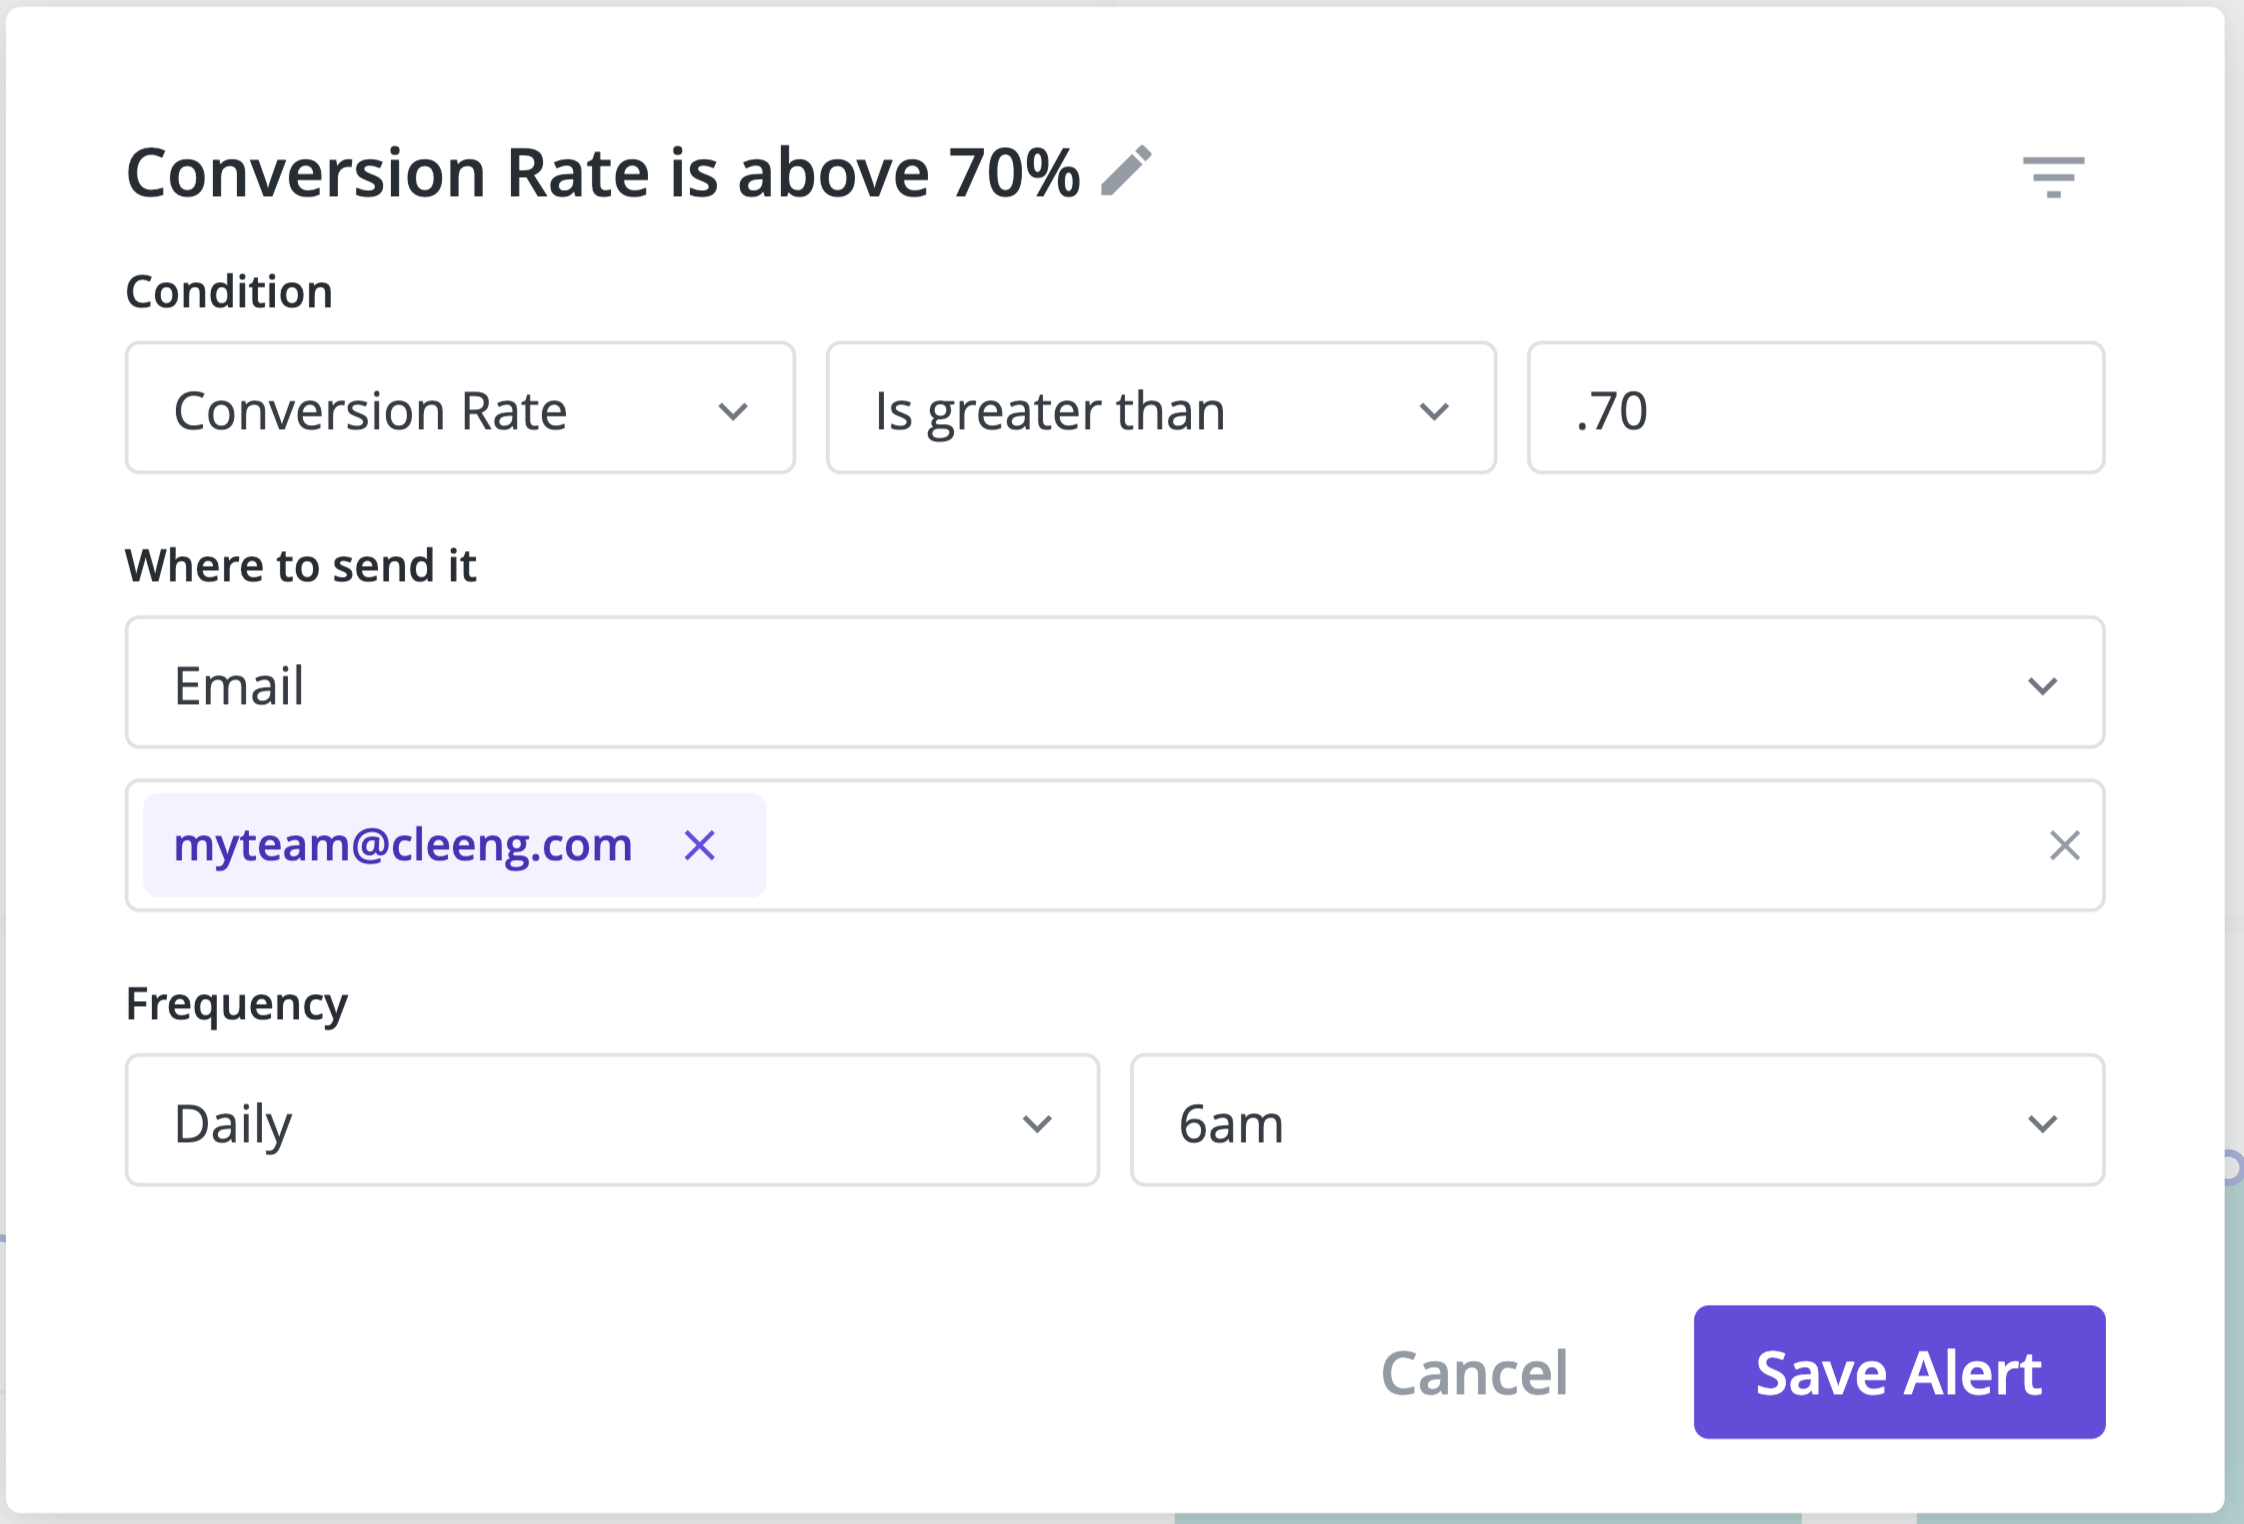 Subscrriber conversion rates